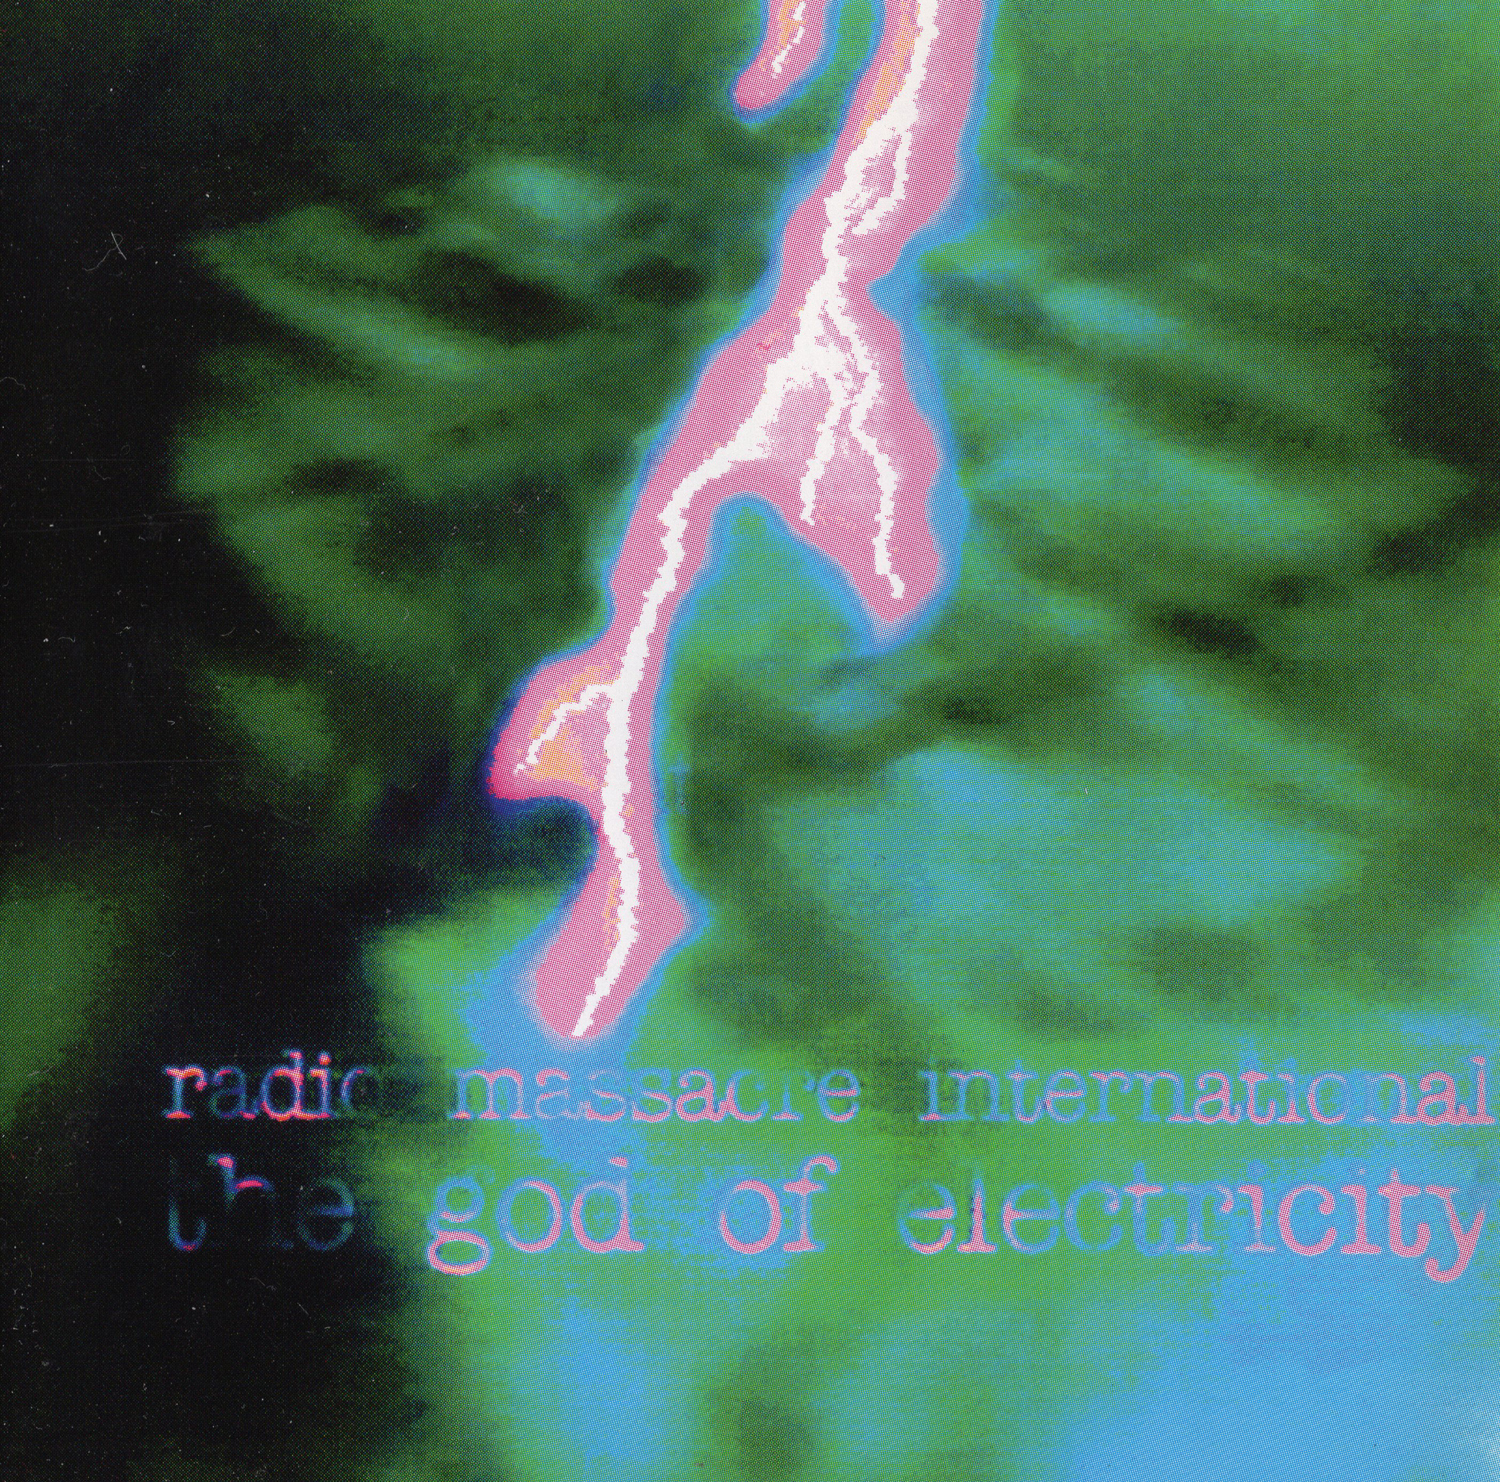 the god of electricity